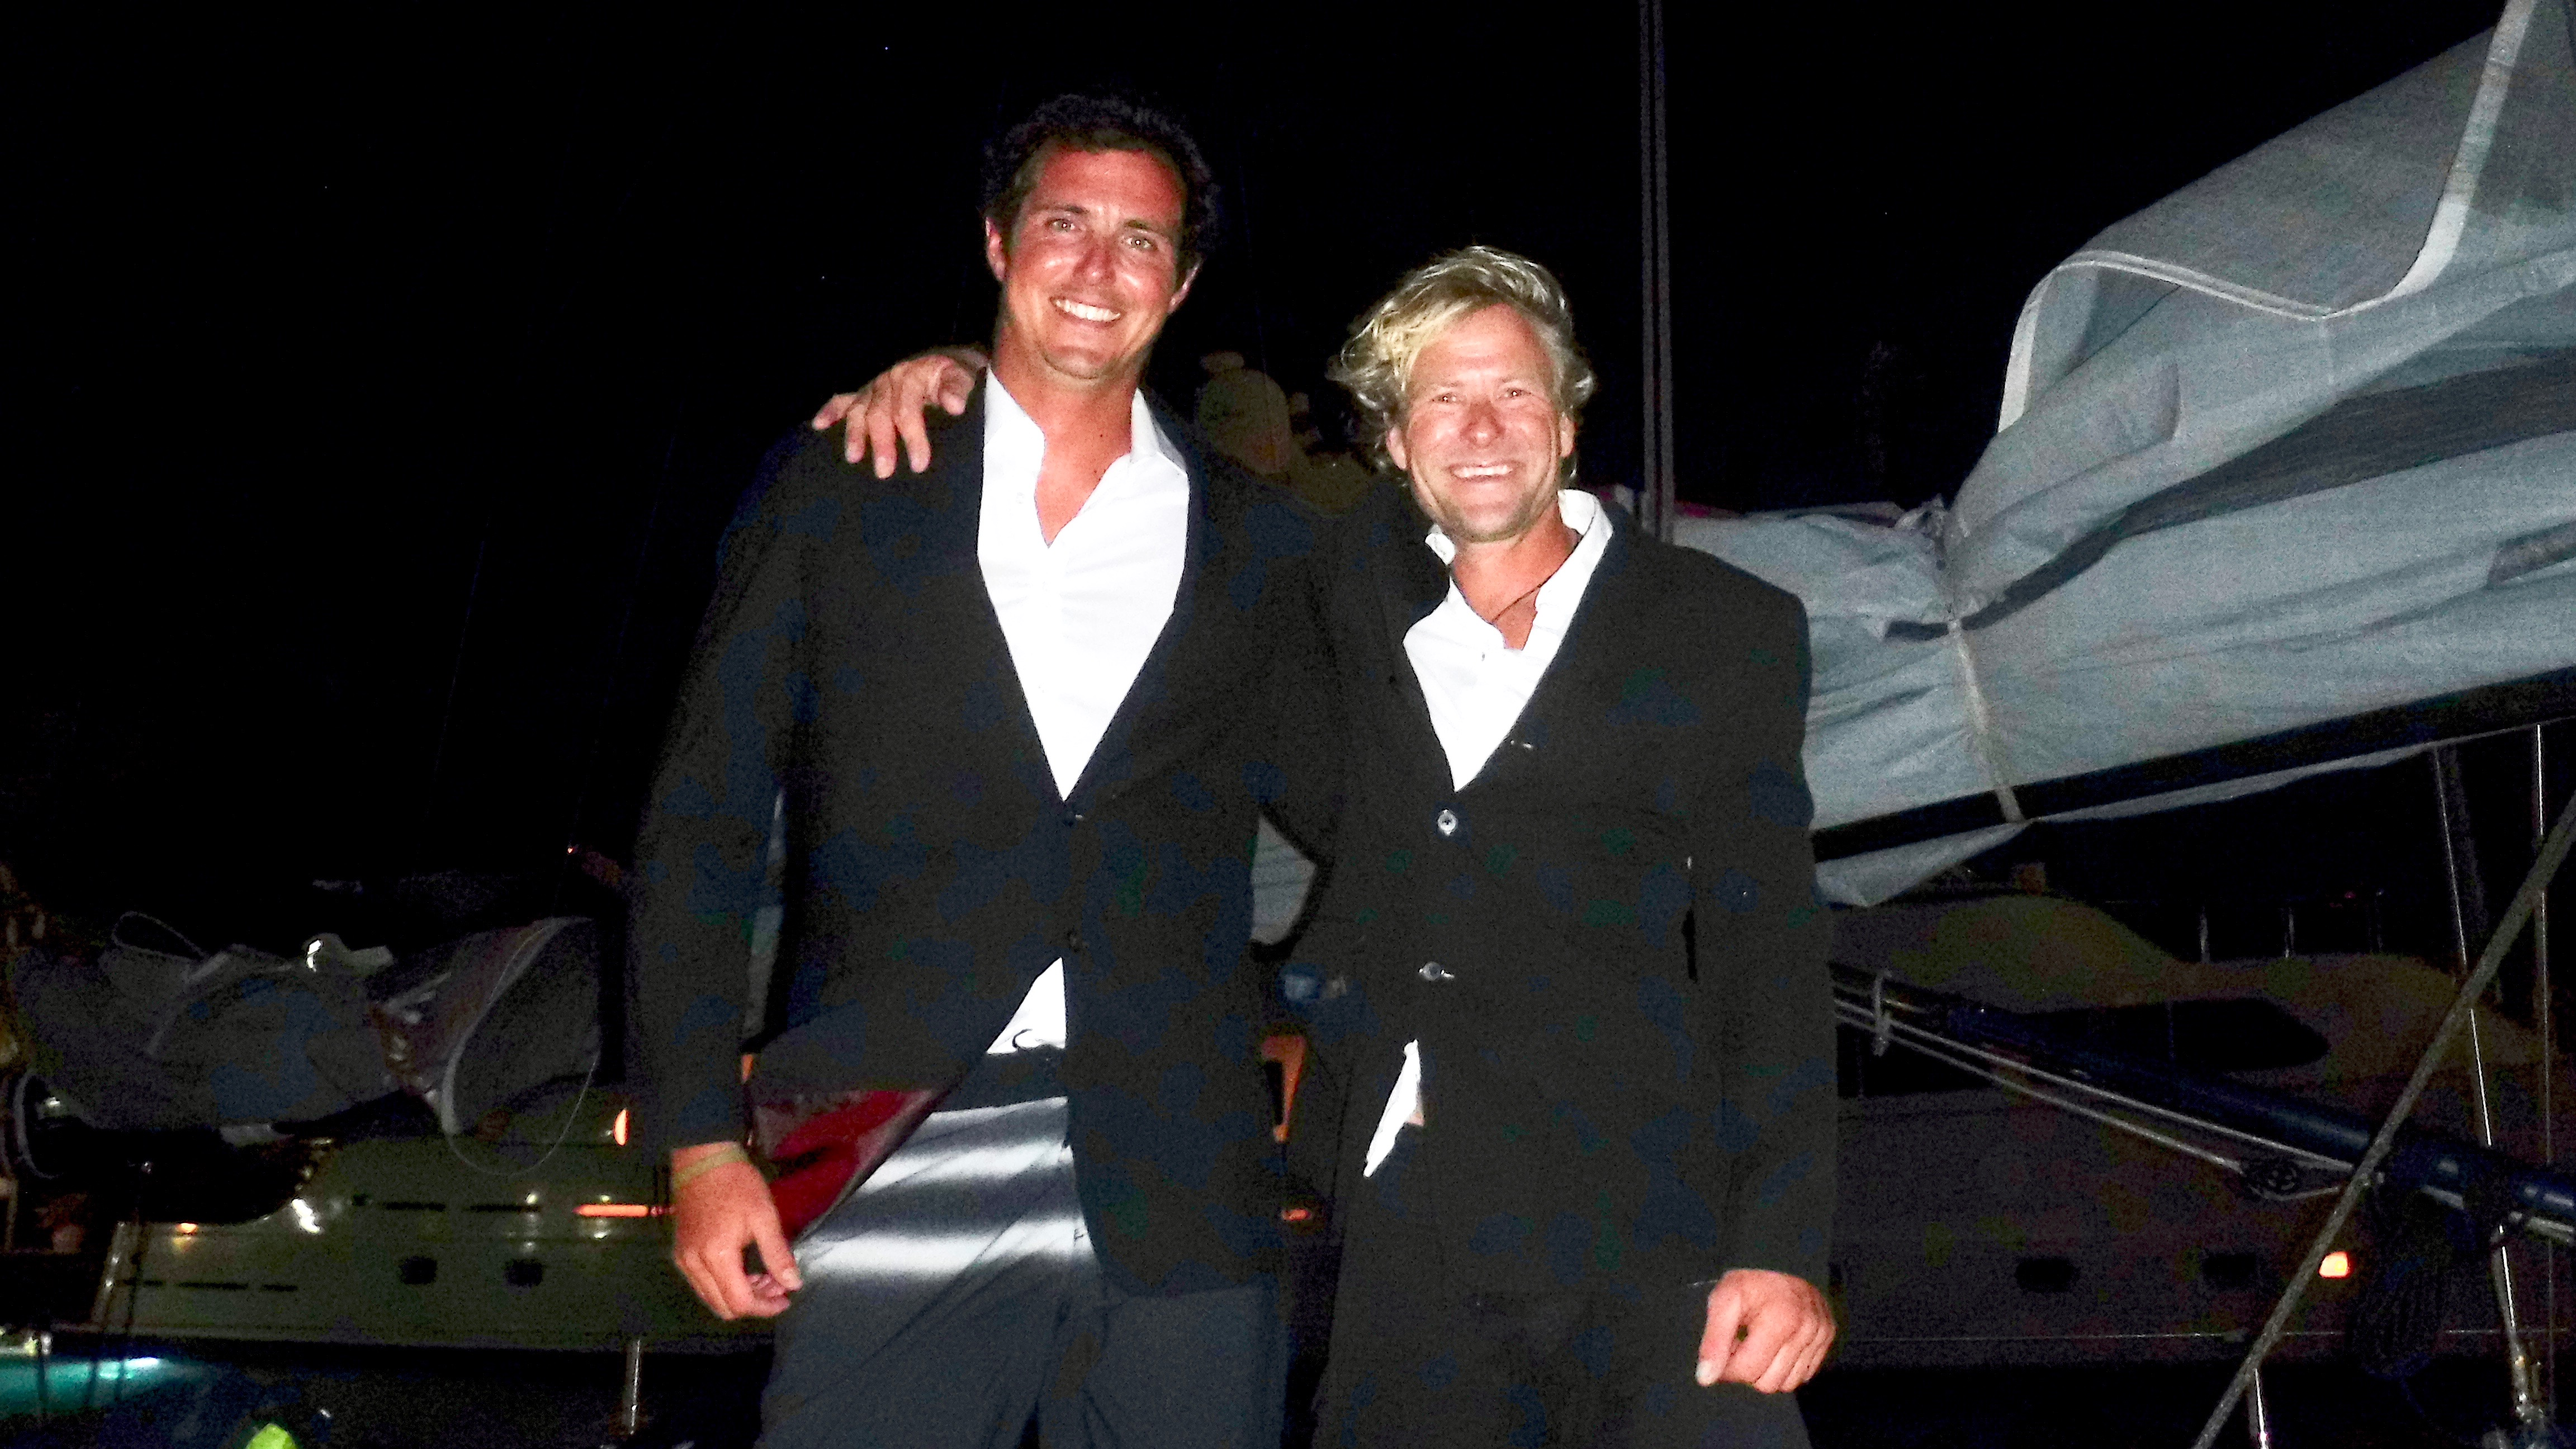 James Heald and Ben Harris resplendent in dinner jackets having successfully completed the RORC Transatlantic Race 2016. Photo: RORC/Louay Habib